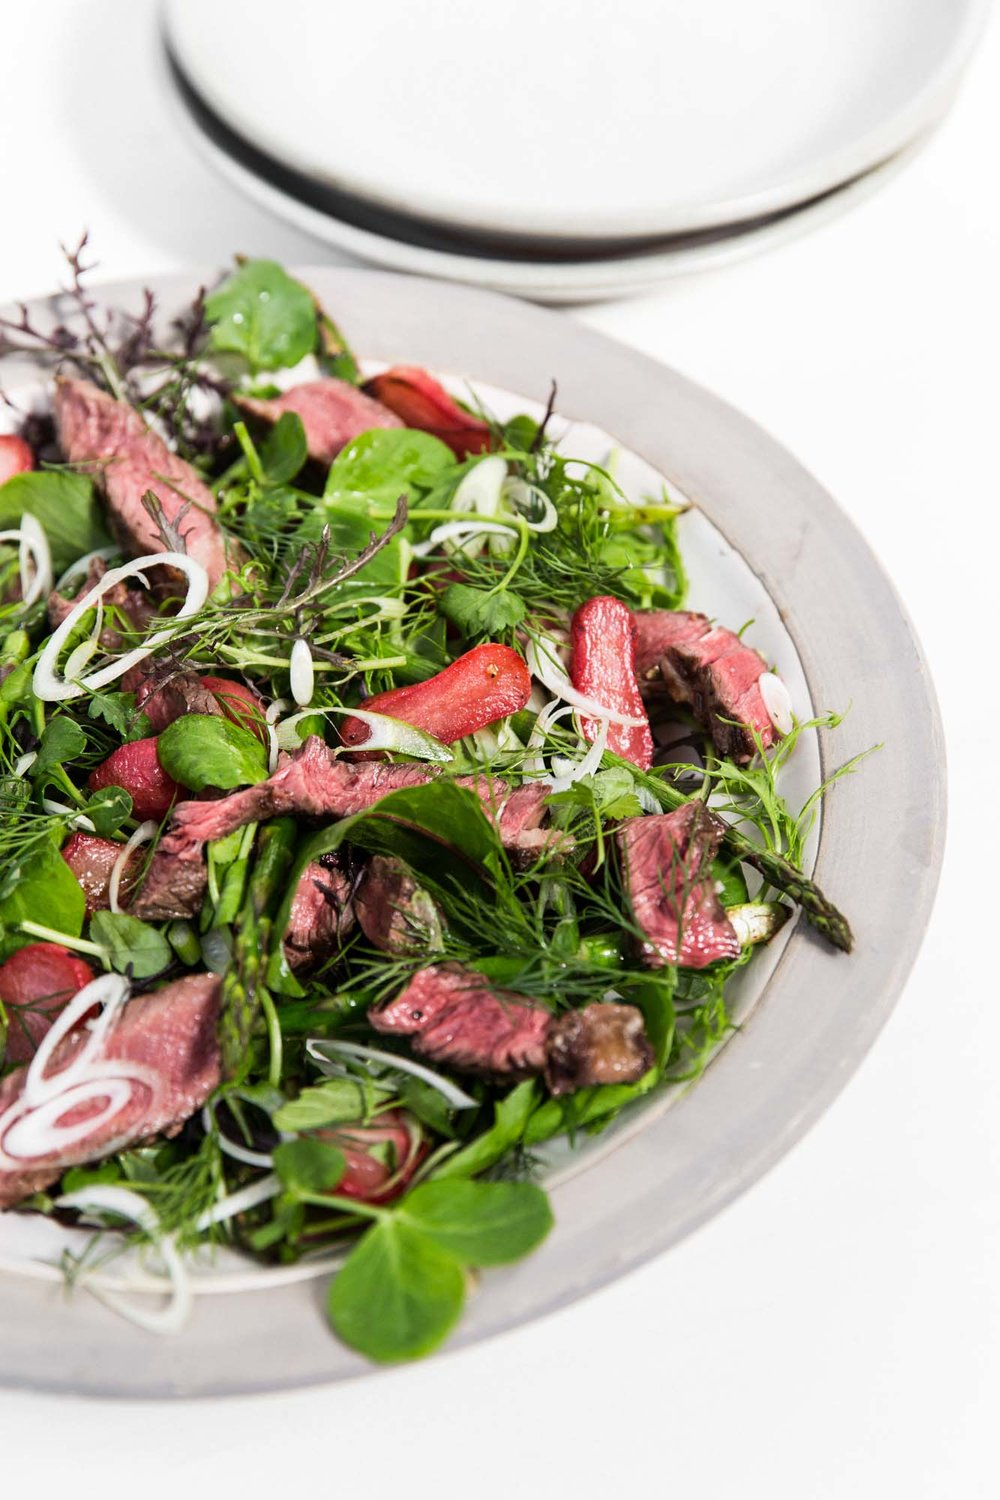 Ingredients - 200g bunch of radishes, washed, trimmed and halved2 tbsp cider vinegar200g bunch of asparagus2 spring onions, trimmed and very finely sliced400g rib-eye steak100g of interesting mixed salad leaves and herbsDressing2 salted anchovy fillets1 small garlic clove½ tbsp Dijon mustard1 egg yolk1 lemon3 tbsp olive oil3 tbsp sunflower oil